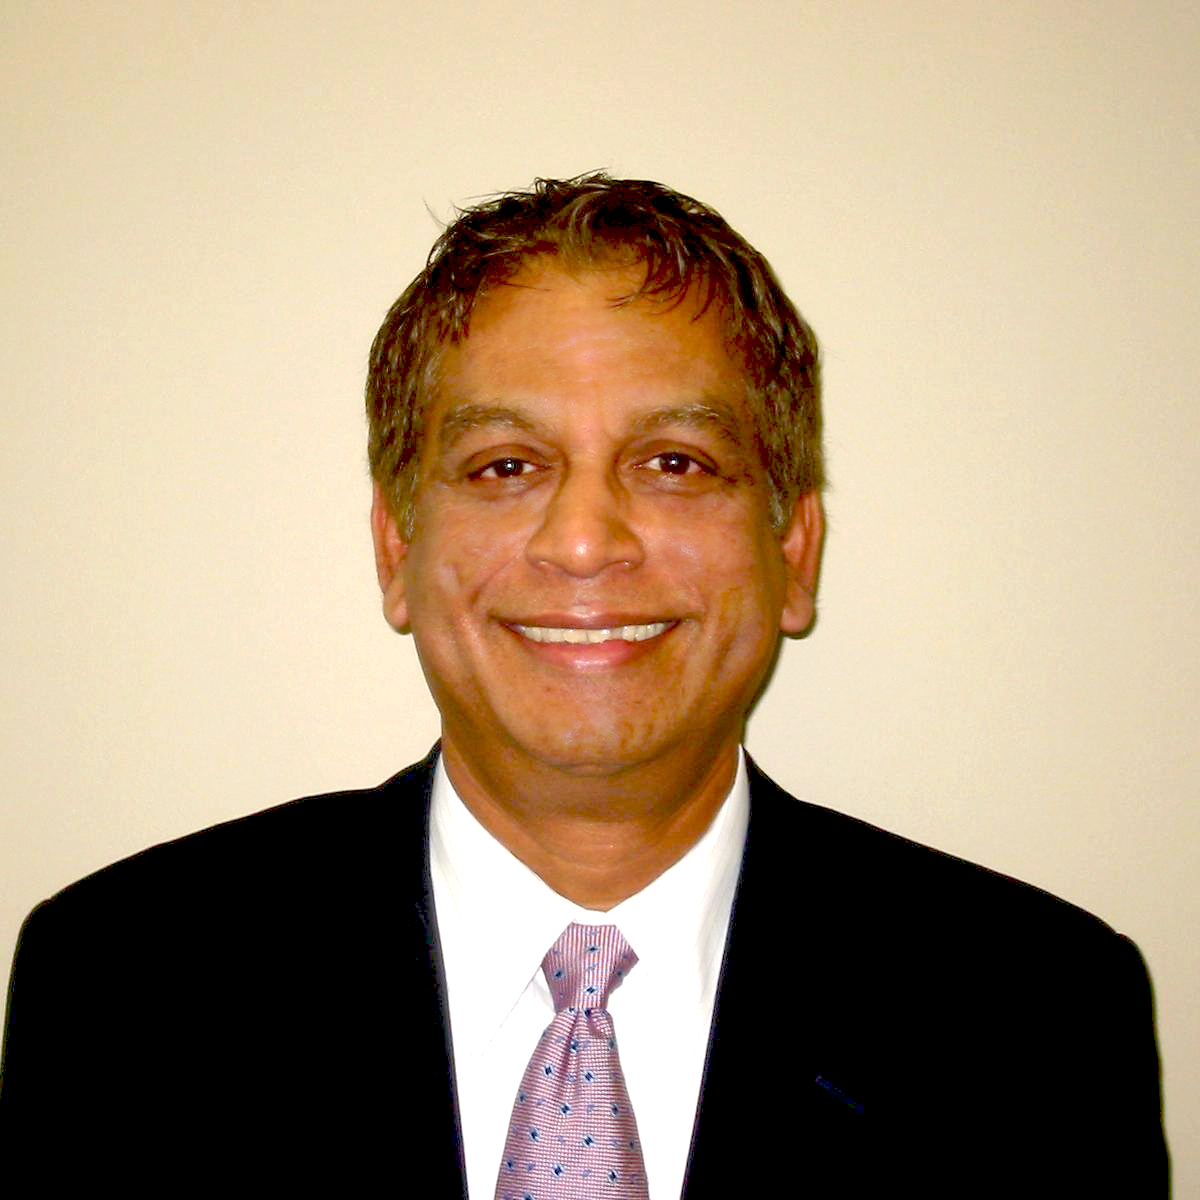 Chan Ghosh - Executive Vice President, Global SaaS Operations